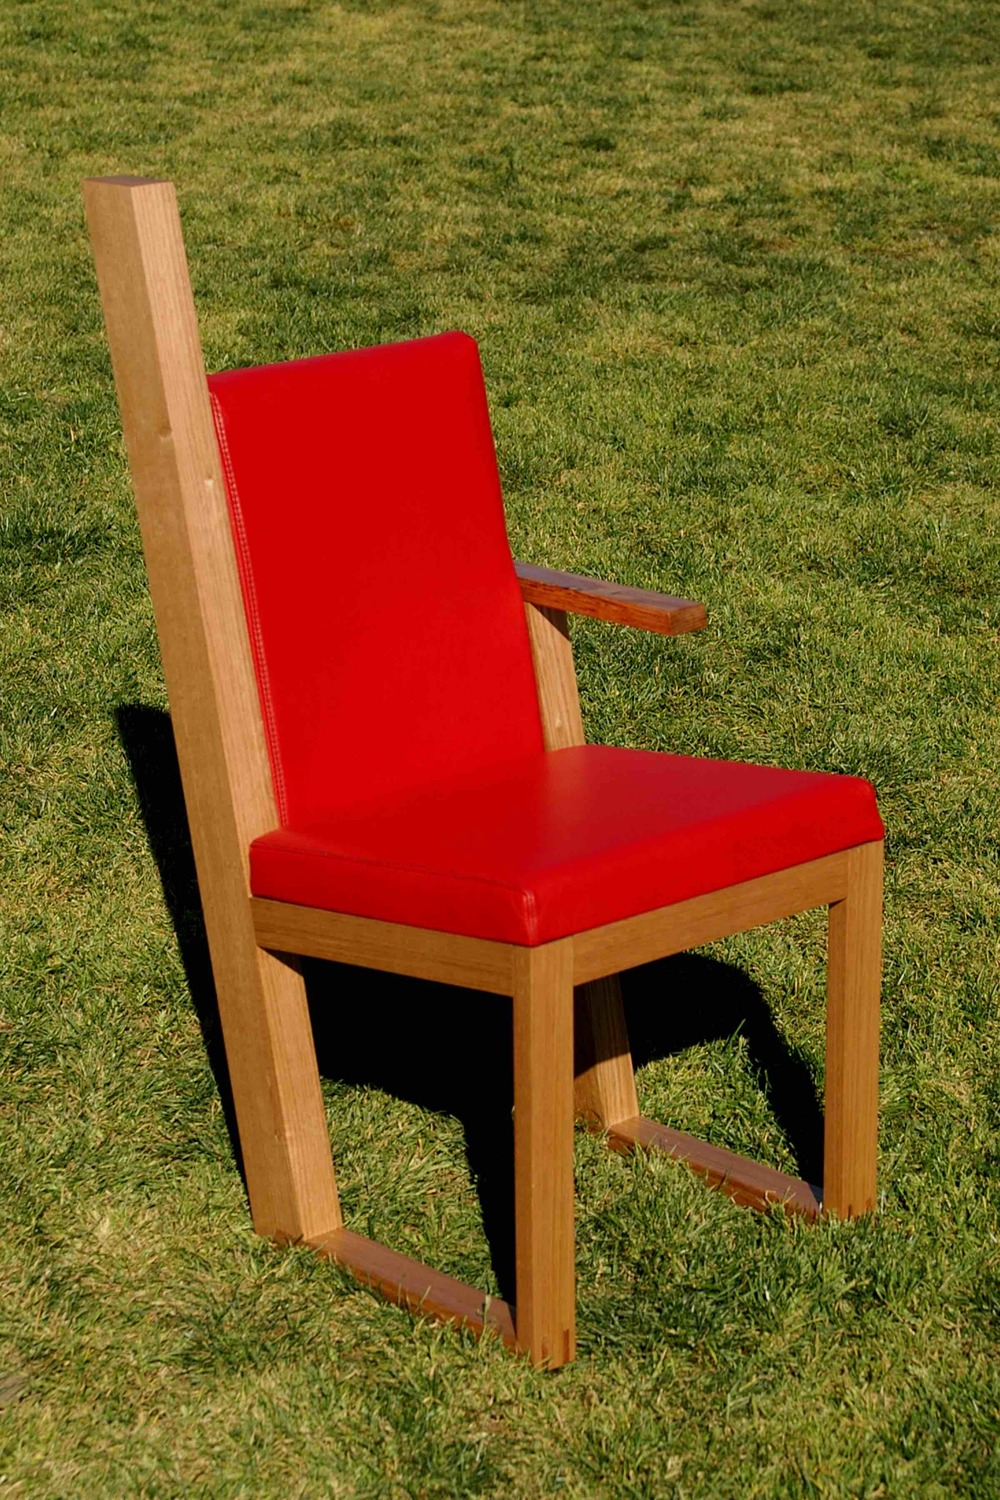 Chair1 copy.jpg